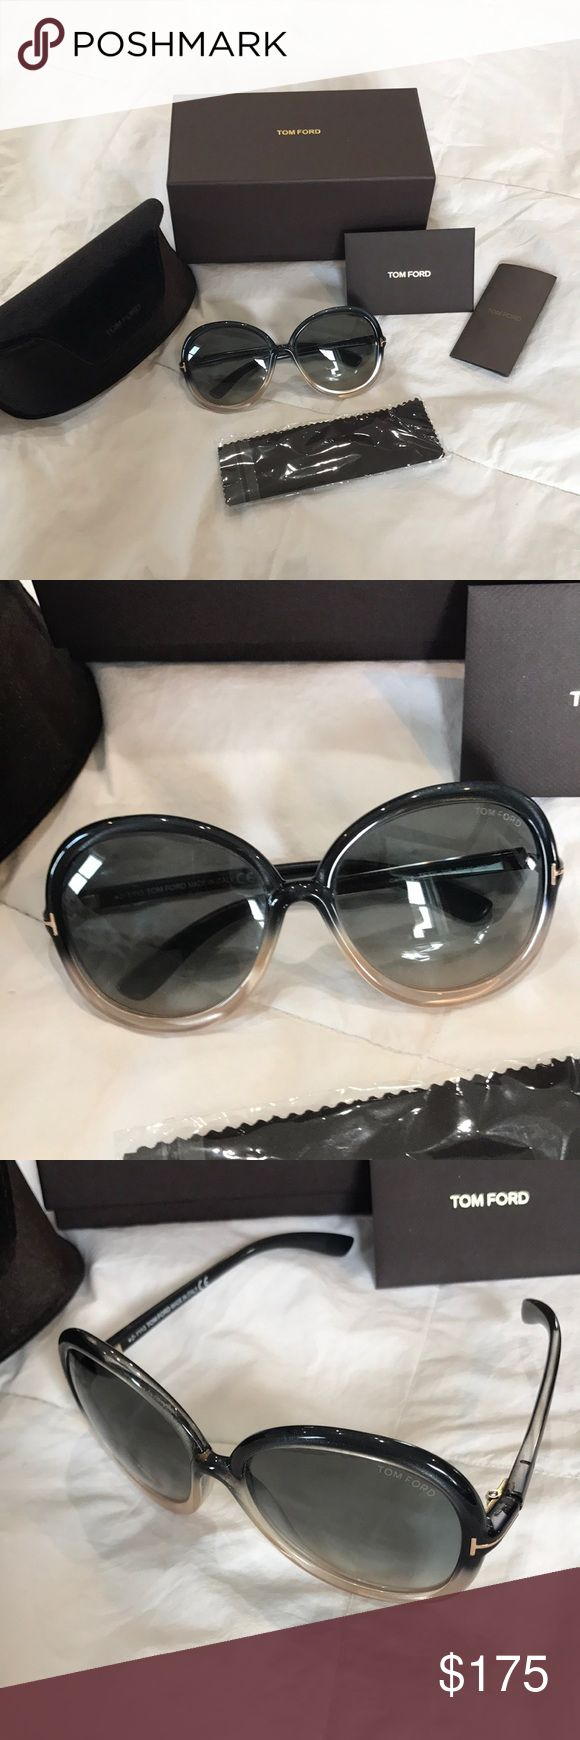 Tom Ford Sunglasses Gorgeous authentic Tom Ford Sunglasses with original box, case, cards and cloth. Bought at Barneys for $595 and worn maybe three times. They are in perfect condition except for very thin wear marks where the end of the arms hit the glass when folded. Very slight and hard to see but wanted to mention it. Great deal at this price! Tom Ford Accessories Sunglasses